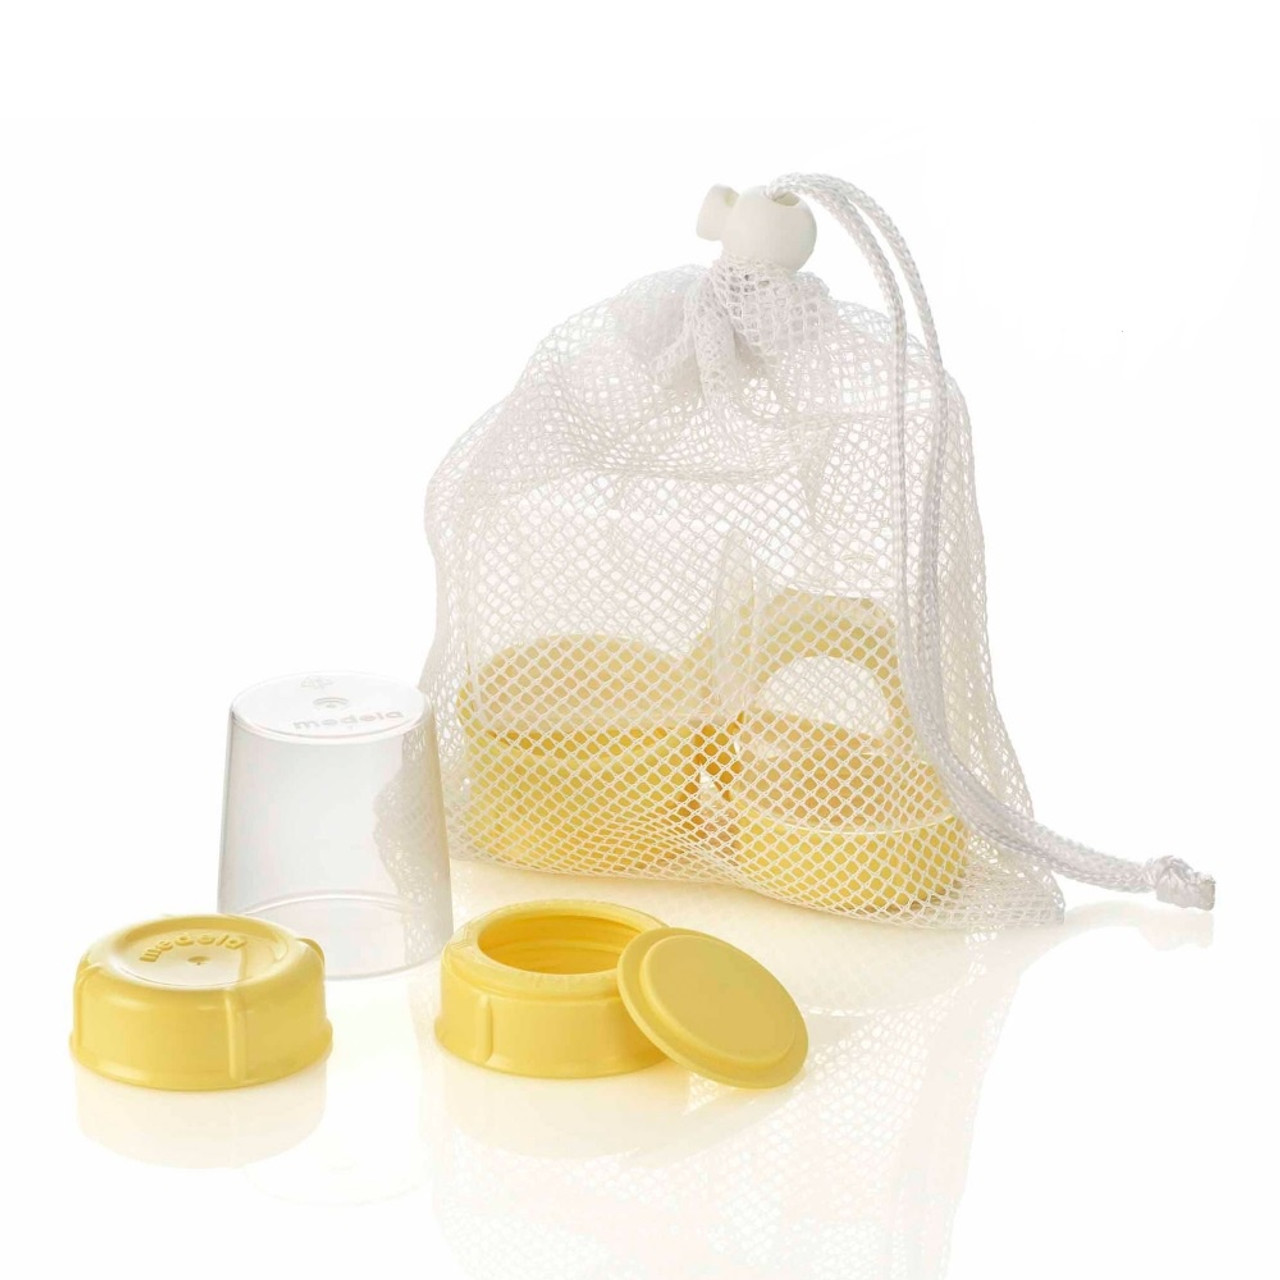 Medela Breast Milk Bottle Spare Parts at Baby Barn Discounts Medela spare parts to fit the Medela wide base nipples and breast milk bottles.